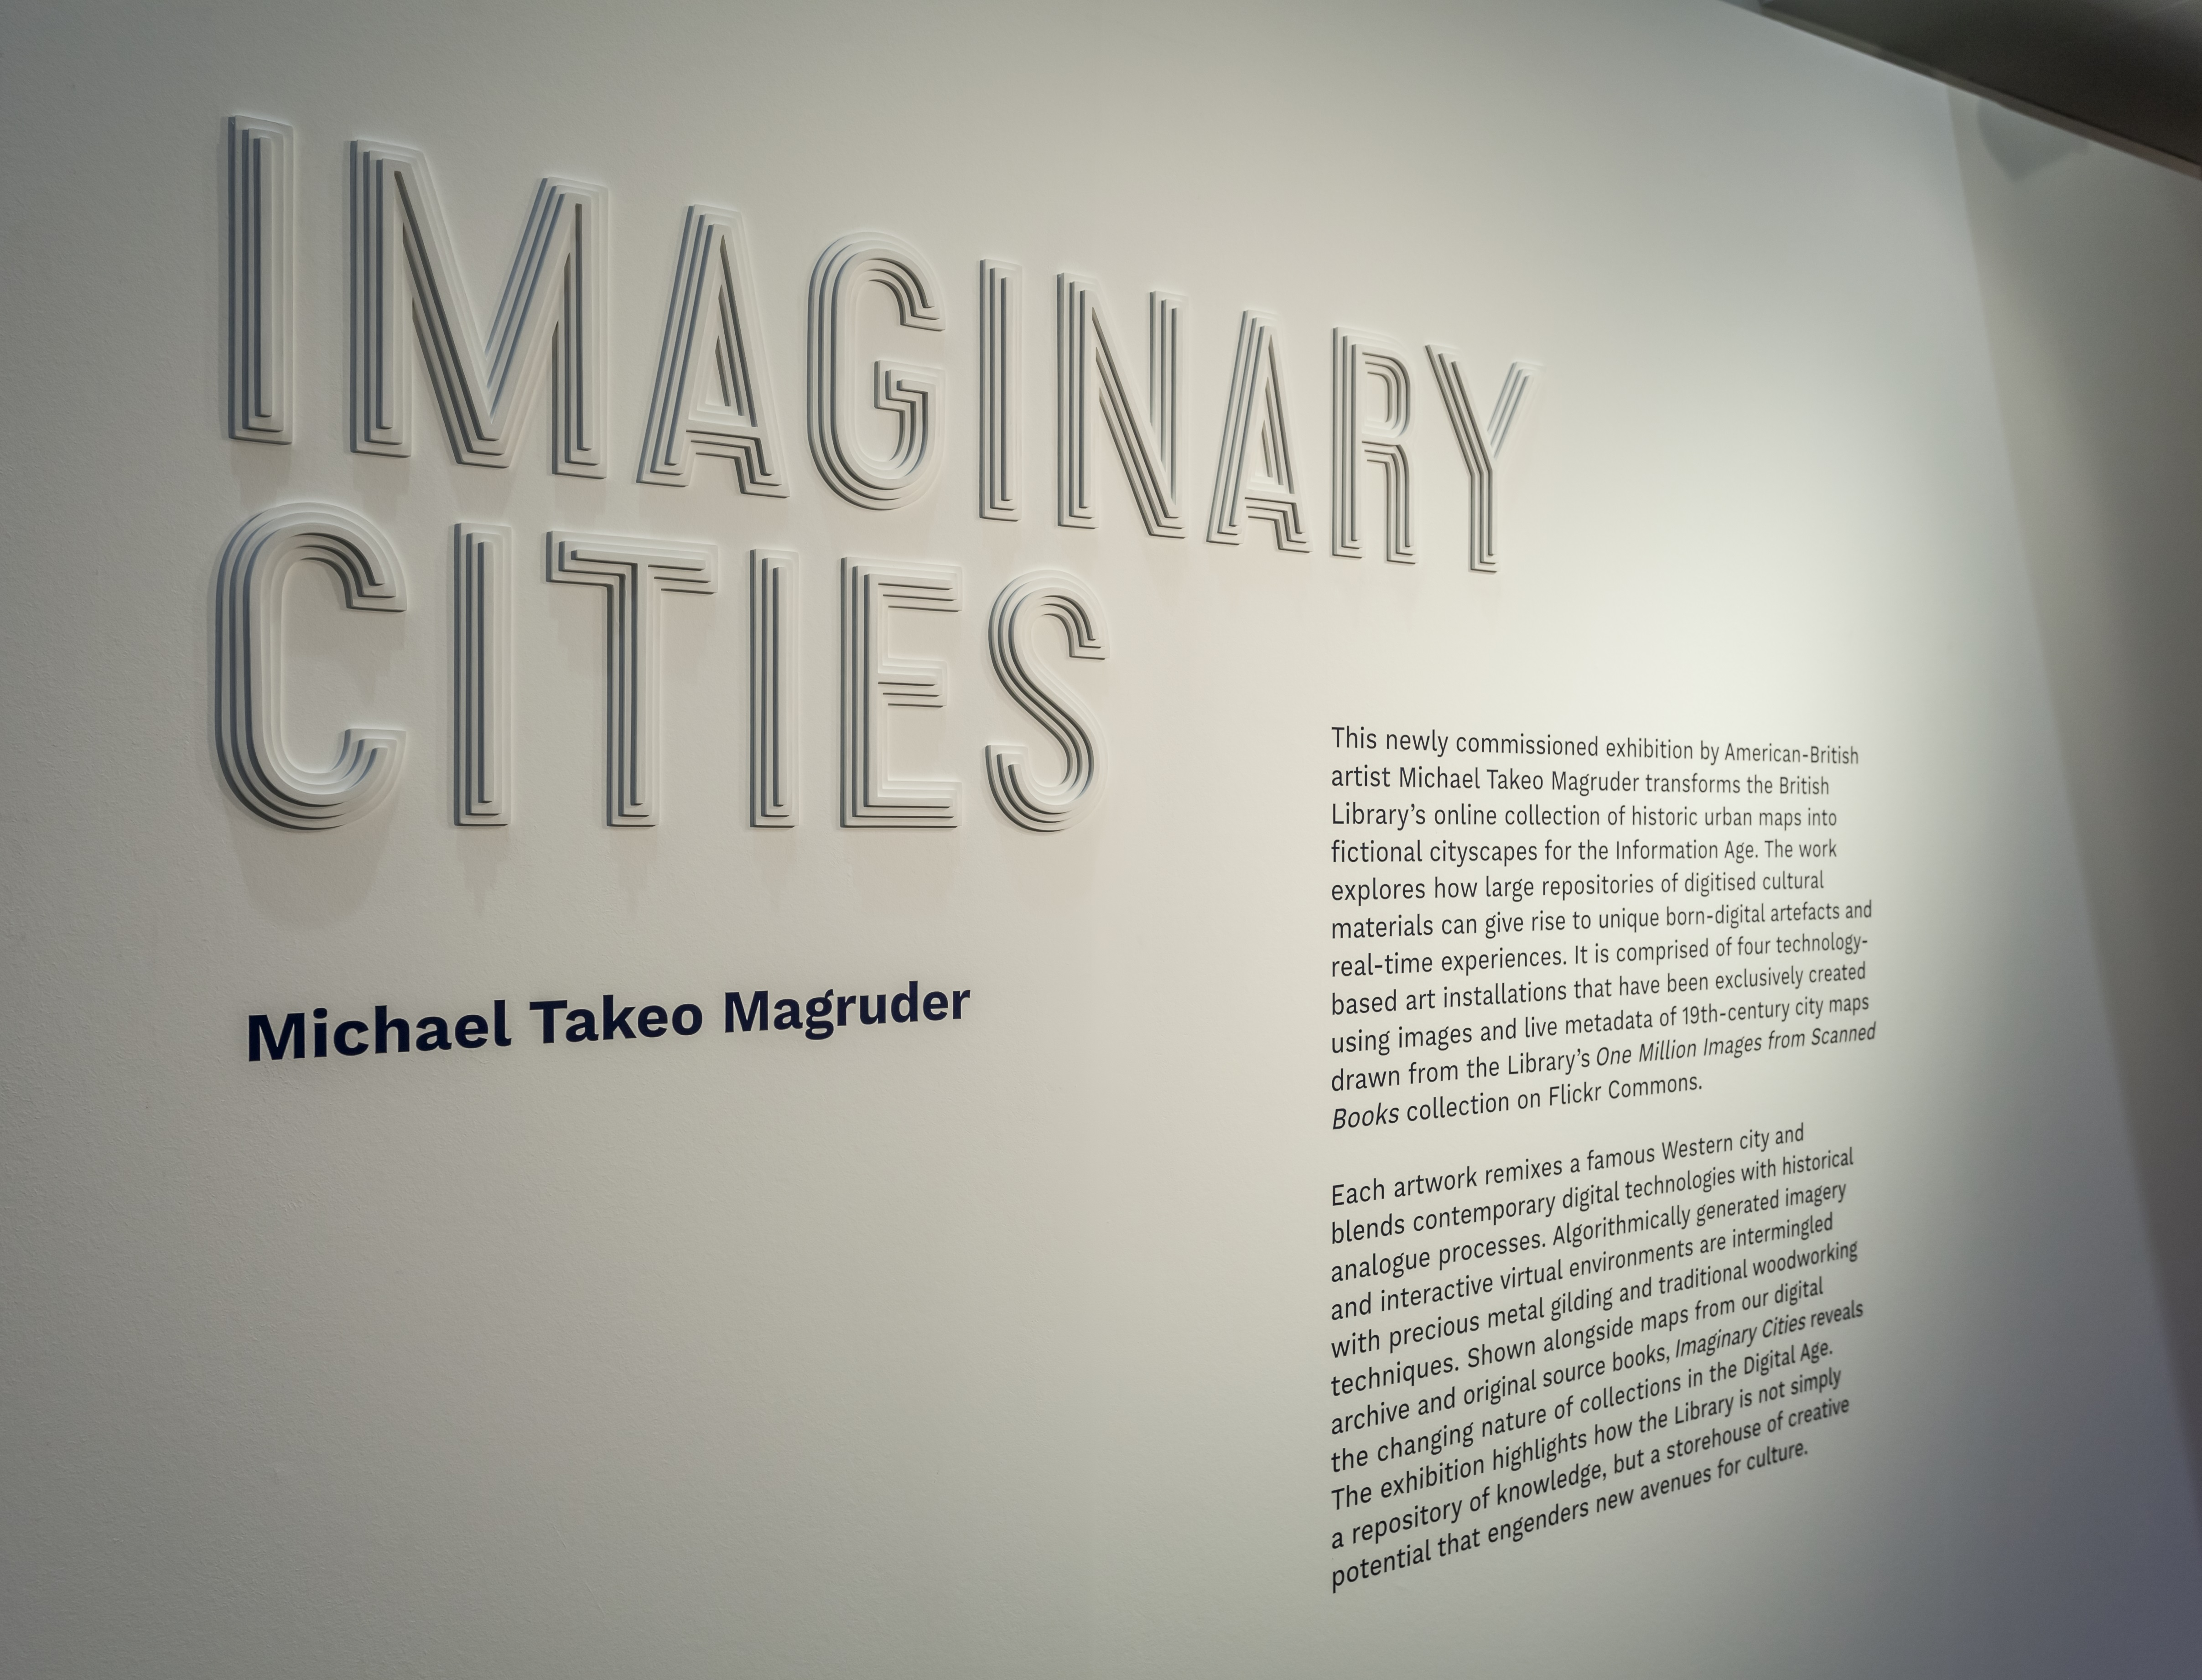 Michael Takeo Magruder, Imaginary Cities at the British Library, 2019. Photographs by David Steele (c) Michael Takeo Magruder